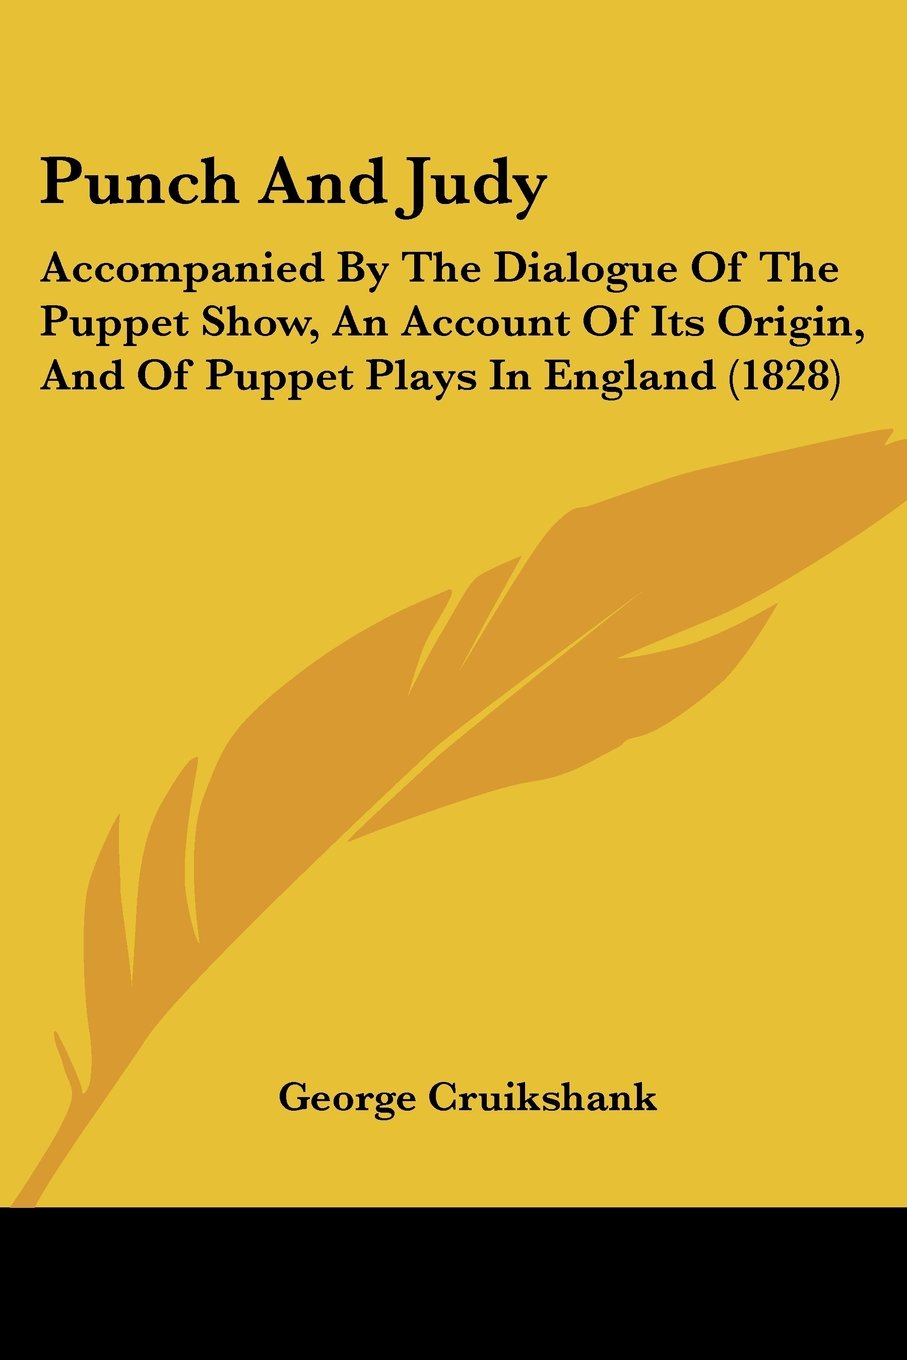 Punch And Judy: Accompanied By The Dialogue Of The Puppet Show, An Account Of Its Origin, And Of Puppet Plays In England (1828)